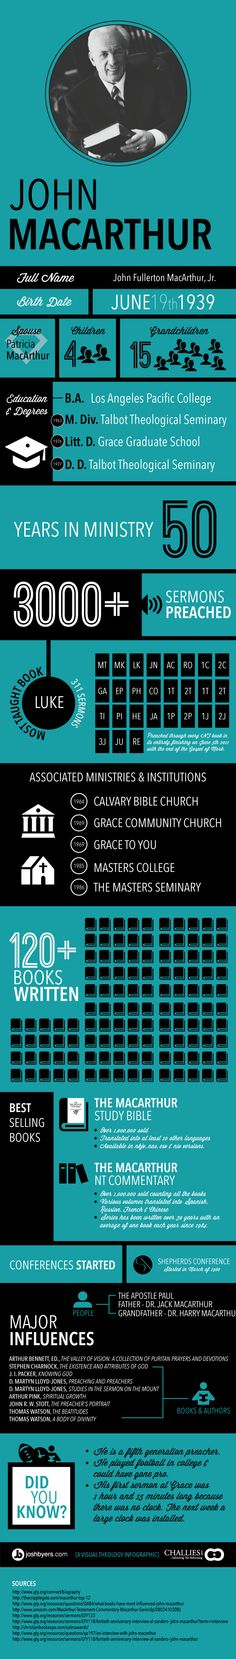 John MacArthur Infographic... wanna read some of his books after seeing some of his quotes that hit truth.